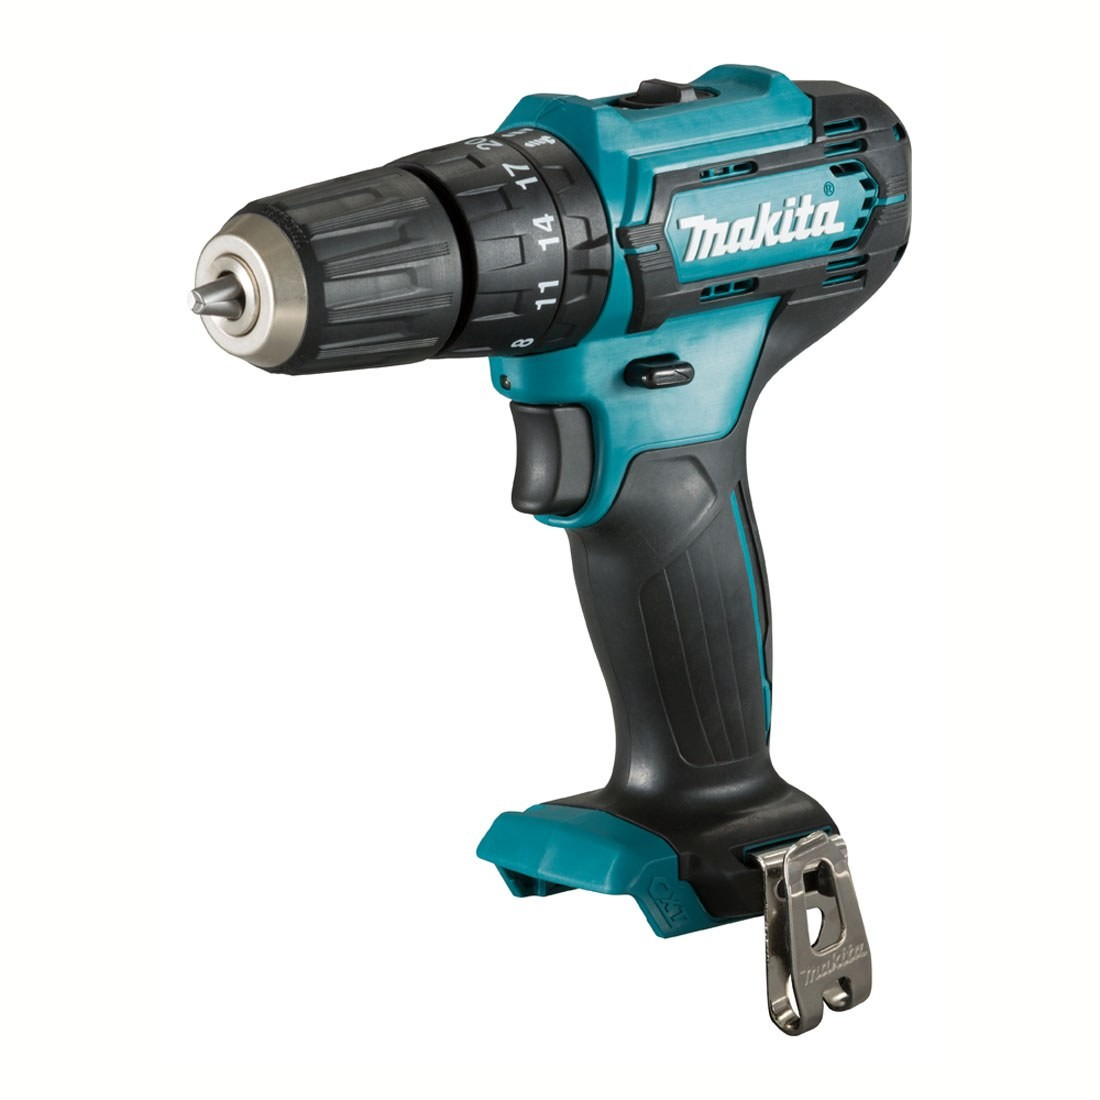 Makita TD110DZ 10.8V CXT Impact Driver with 1 x 2.0Ah Battery /& Charger in Case